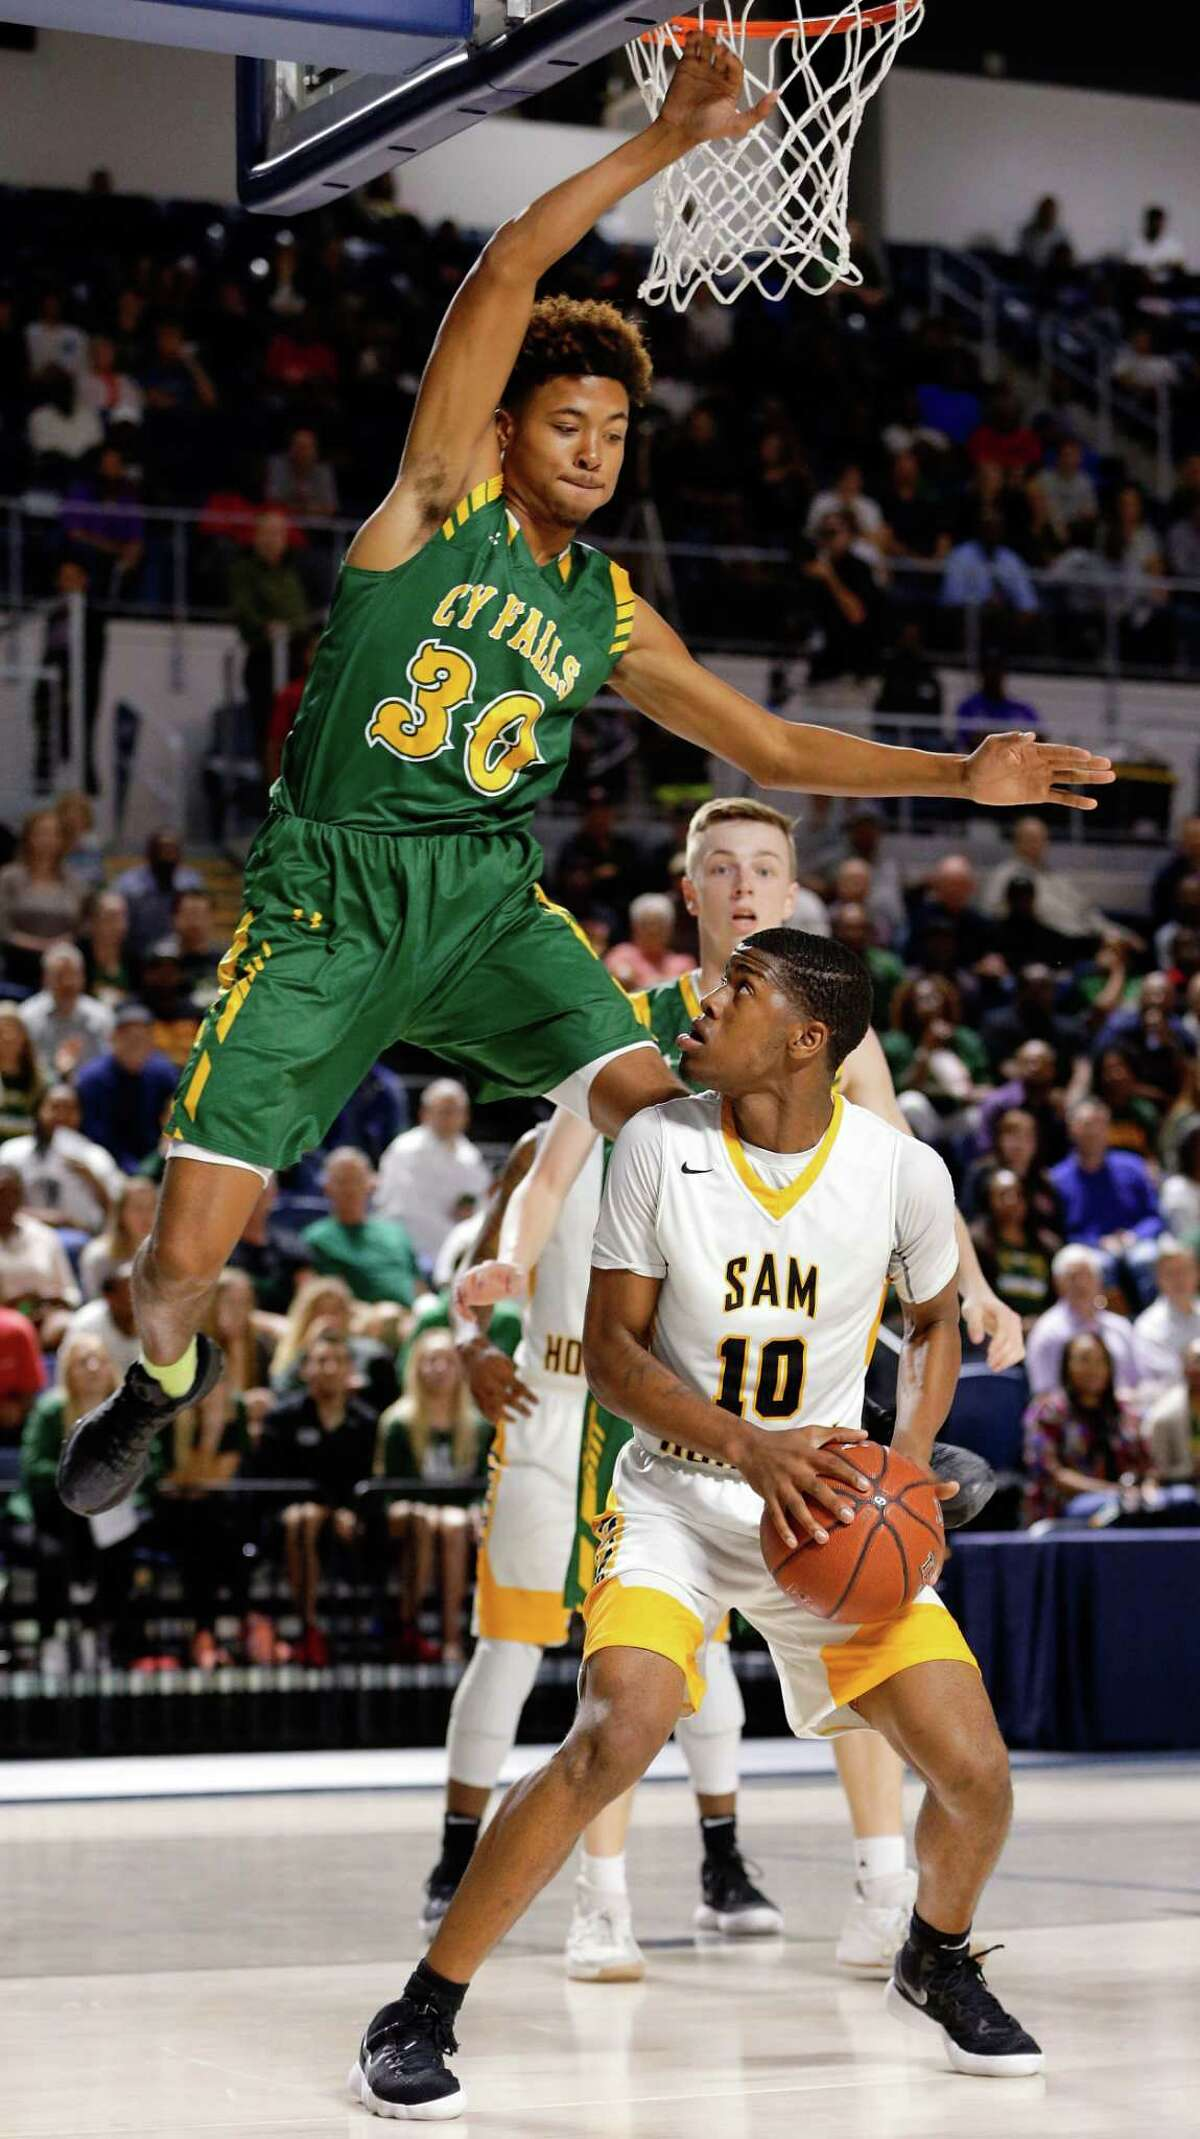 Sam Houston's Chris Green (10) waits to put up his shot as Cy Falls' TJ Goodwin (30) flies by during the first half of their regional quarterfinal game at Delmar Fieldhouse Feb. 27, 2018 in Houston, TX. (Michael Wyke / For the Chronicle)